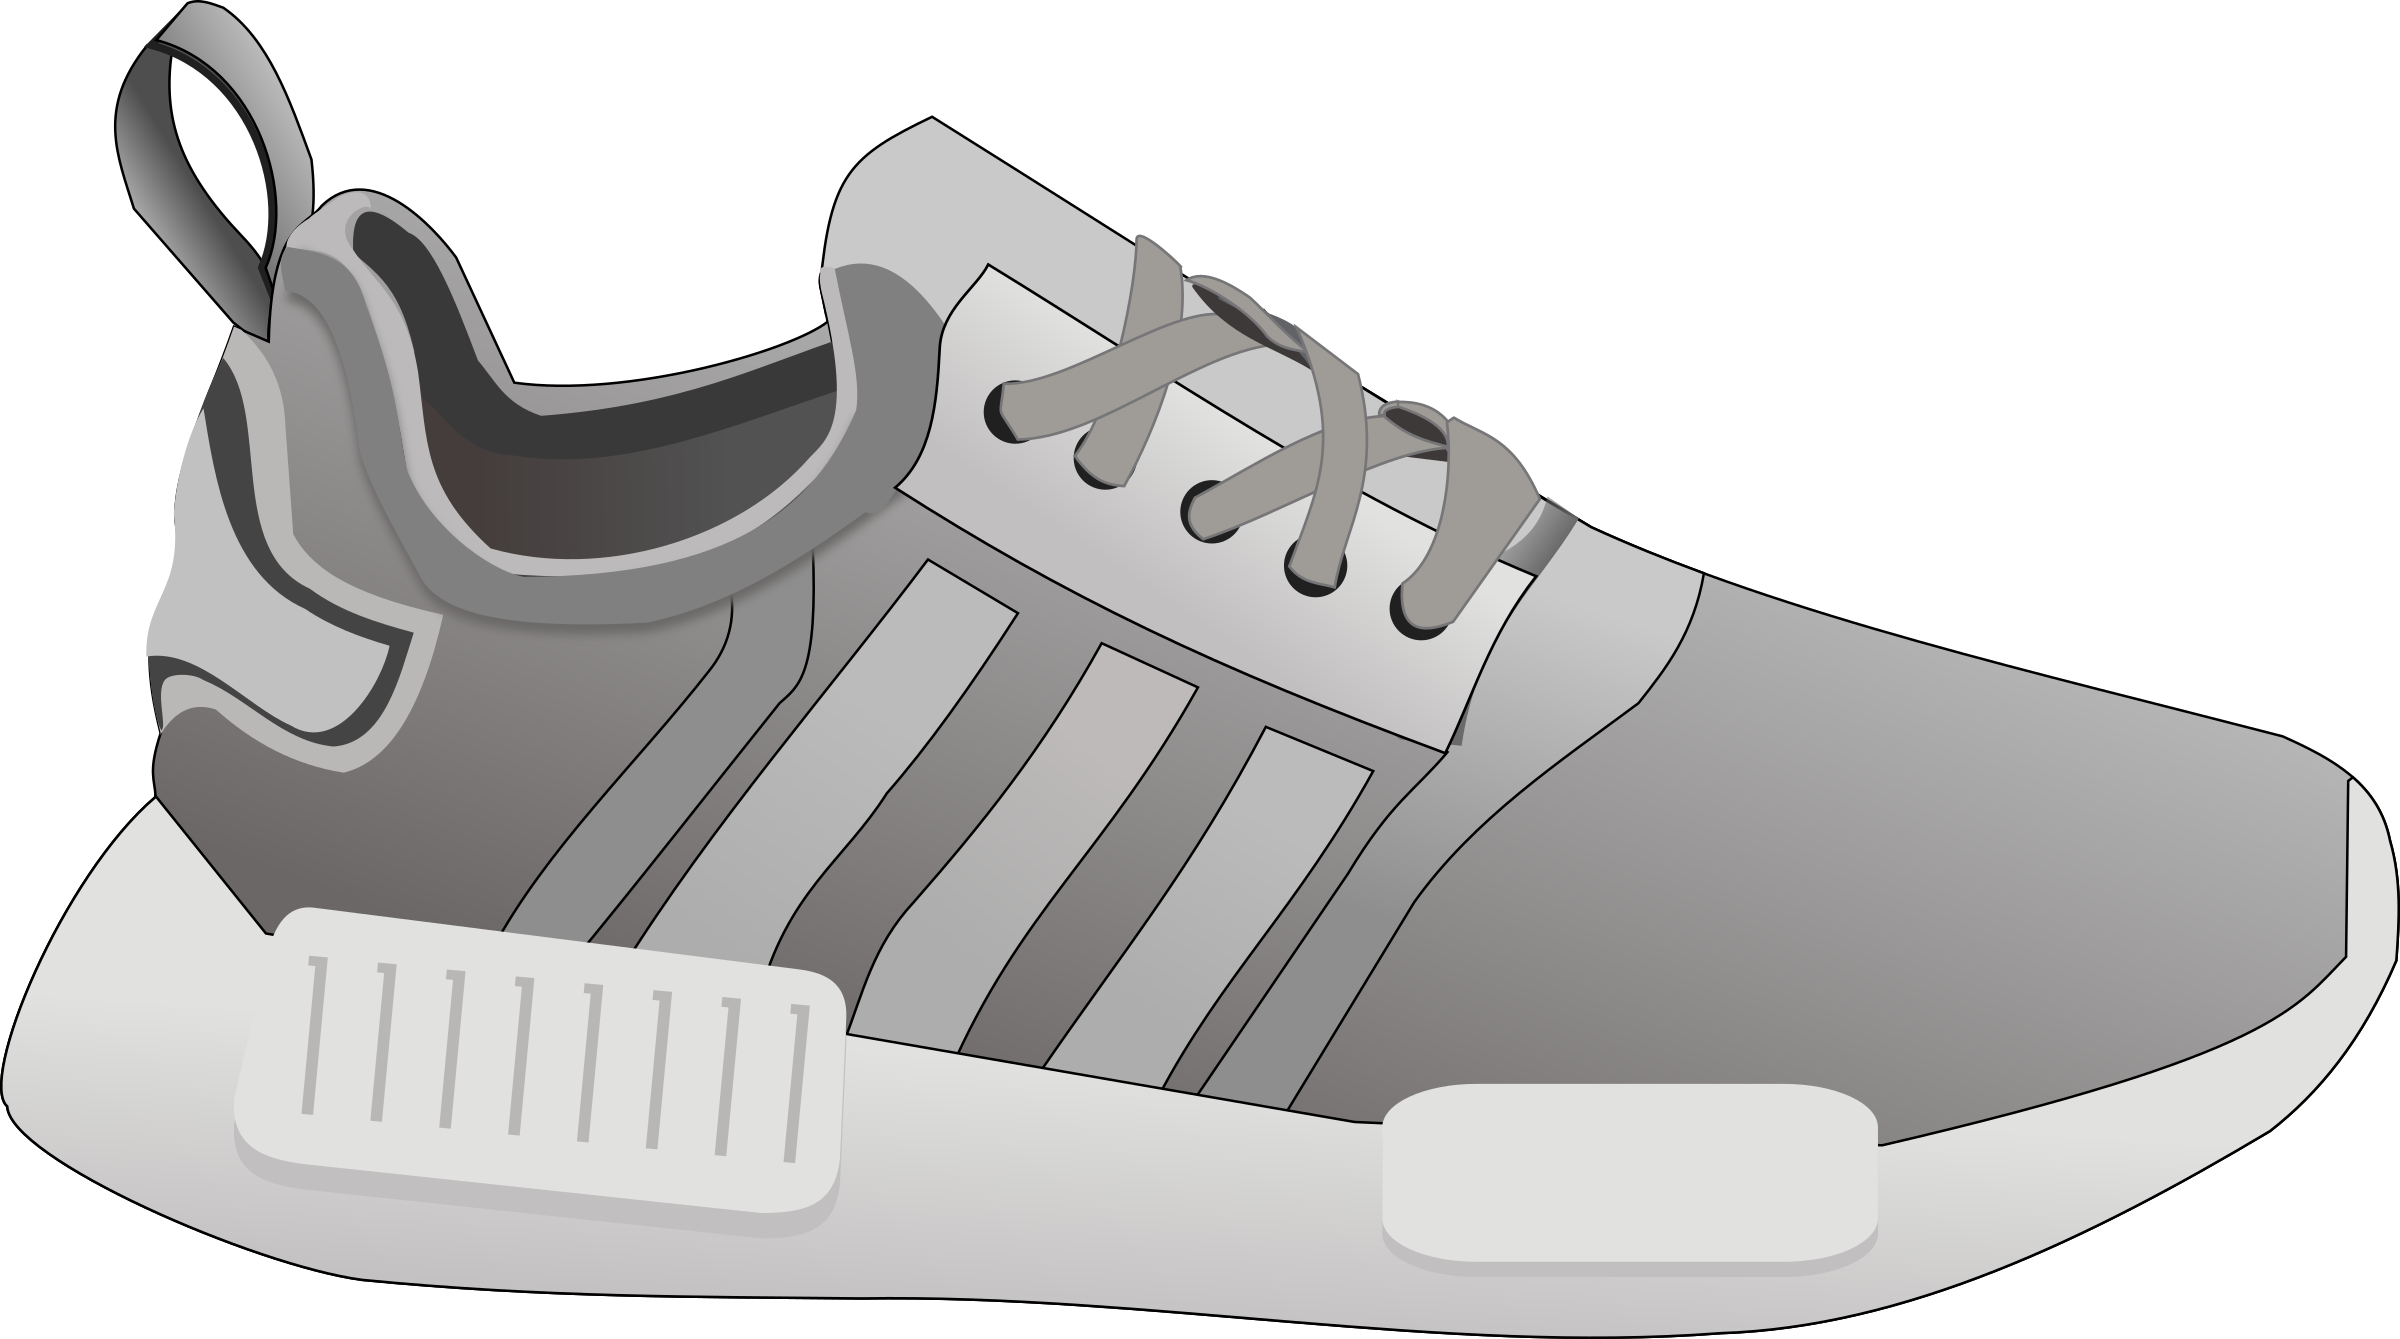 picture download Tennis shoe clipart black and white. Re remix icons png